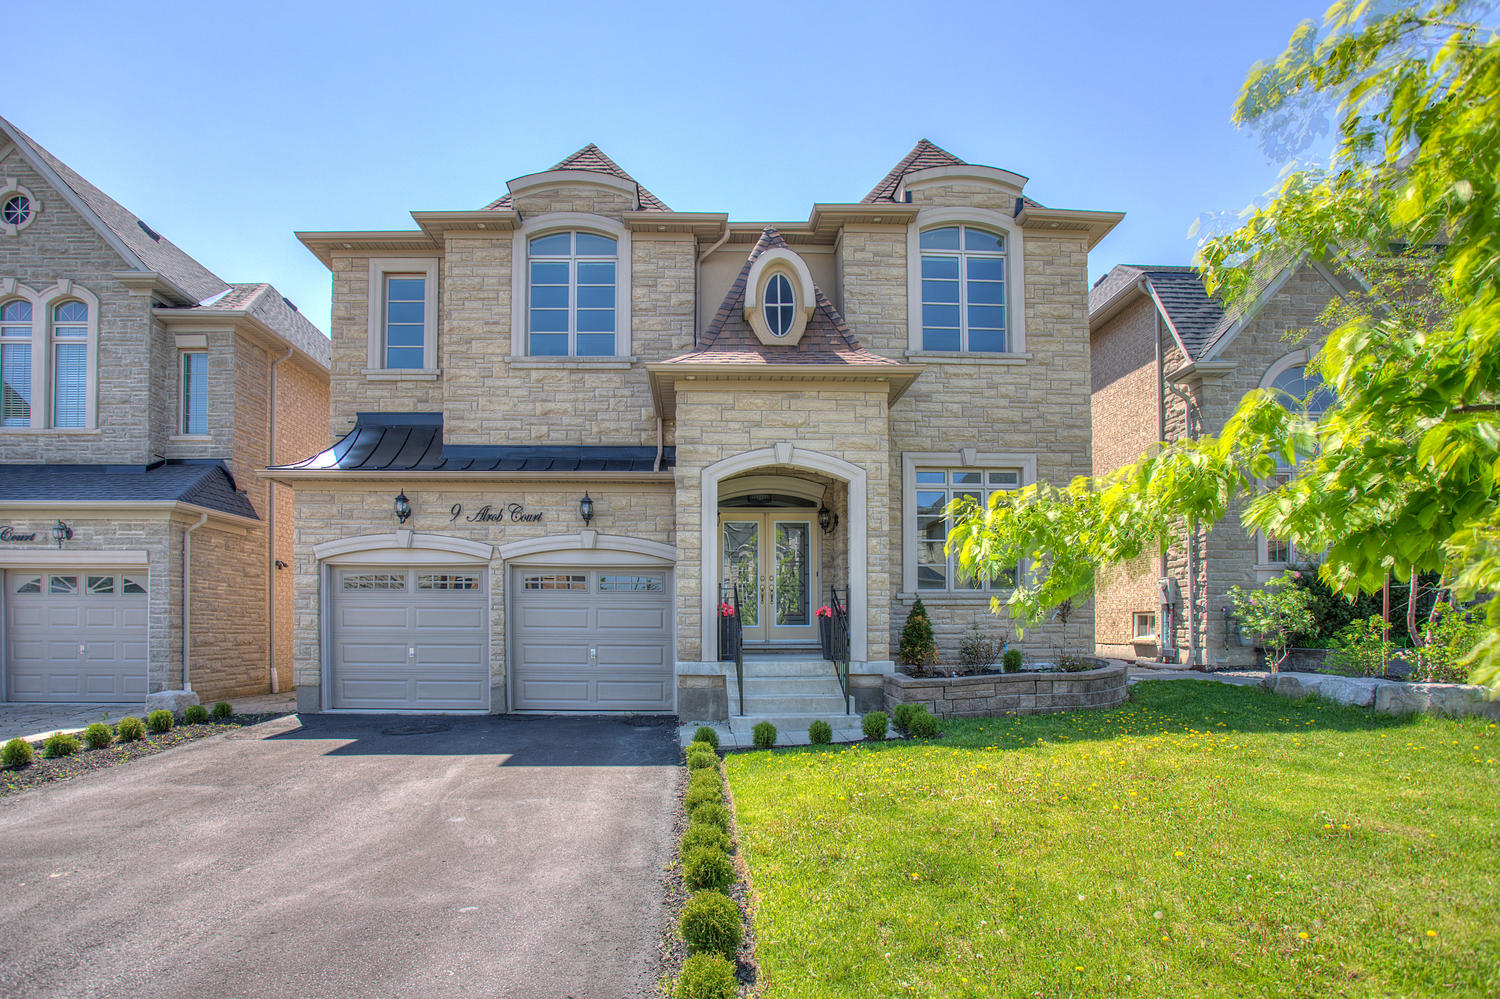 Main Photo: 9 Alrob Crt in Vaughan: Patterson Freehold for sale